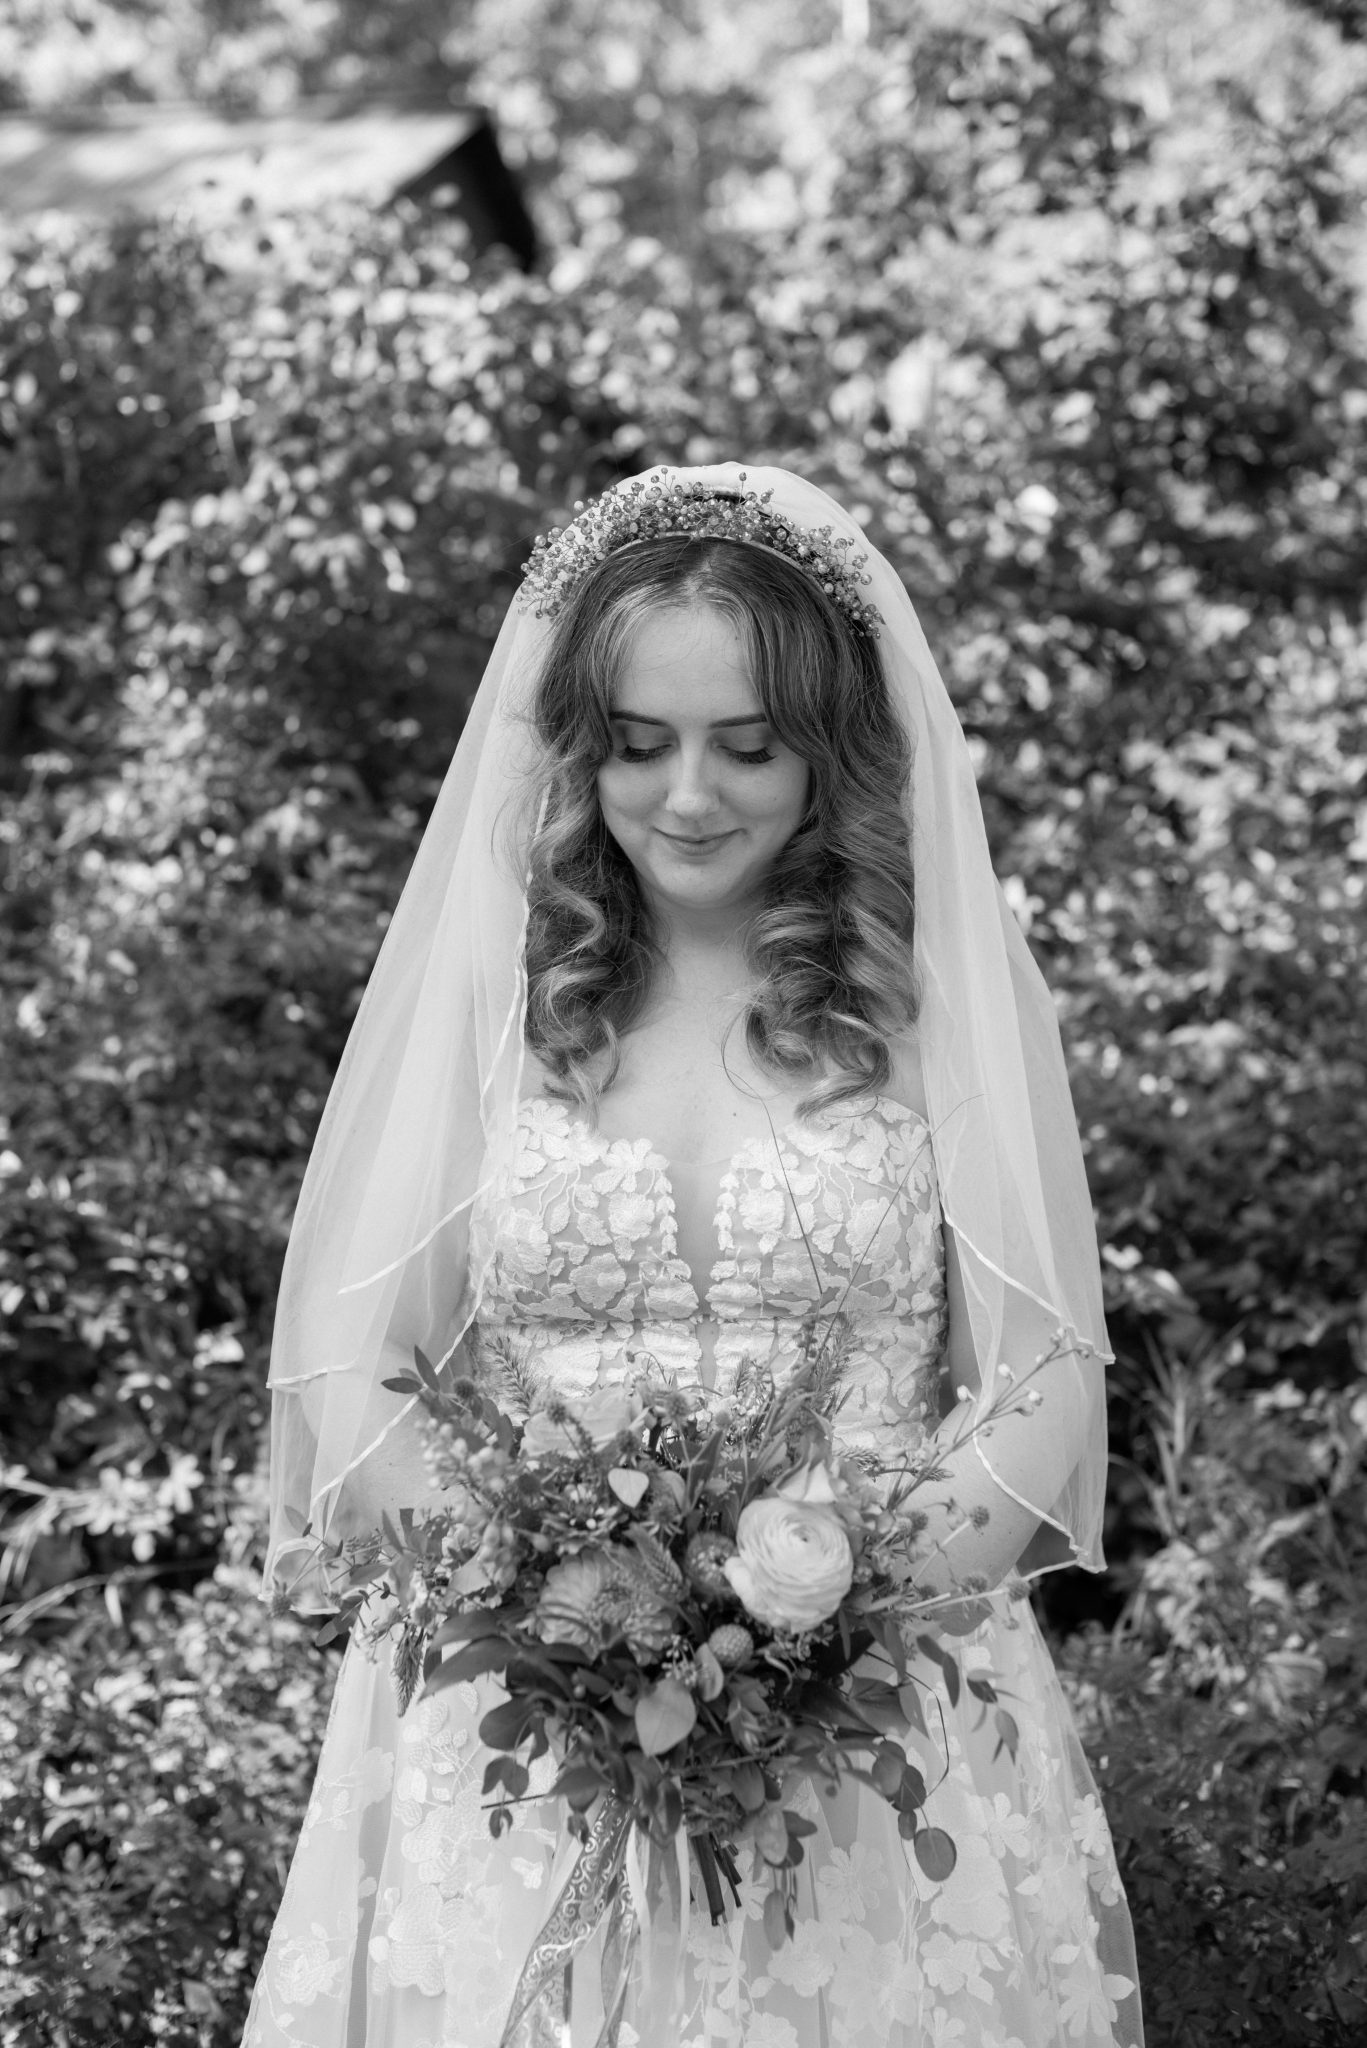 Fairytale wildflower bridal inspiration with vintage vibes